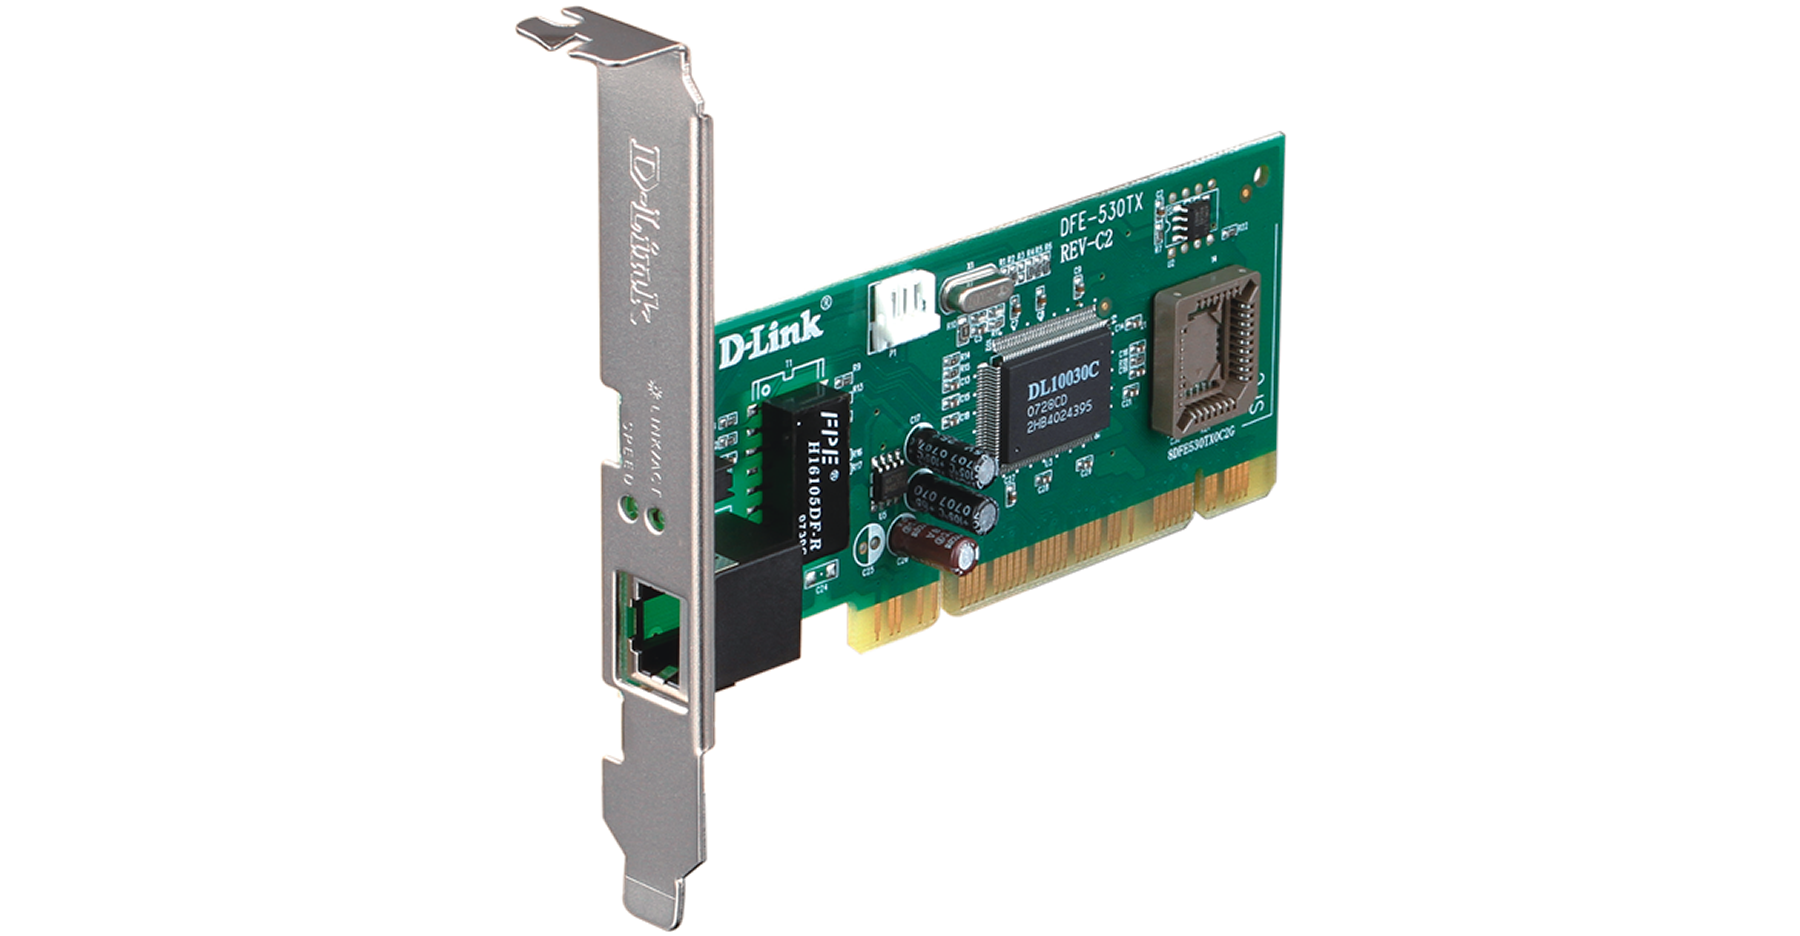 D-LINK DL10030C LAN CARD TREIBER WINDOWS 7